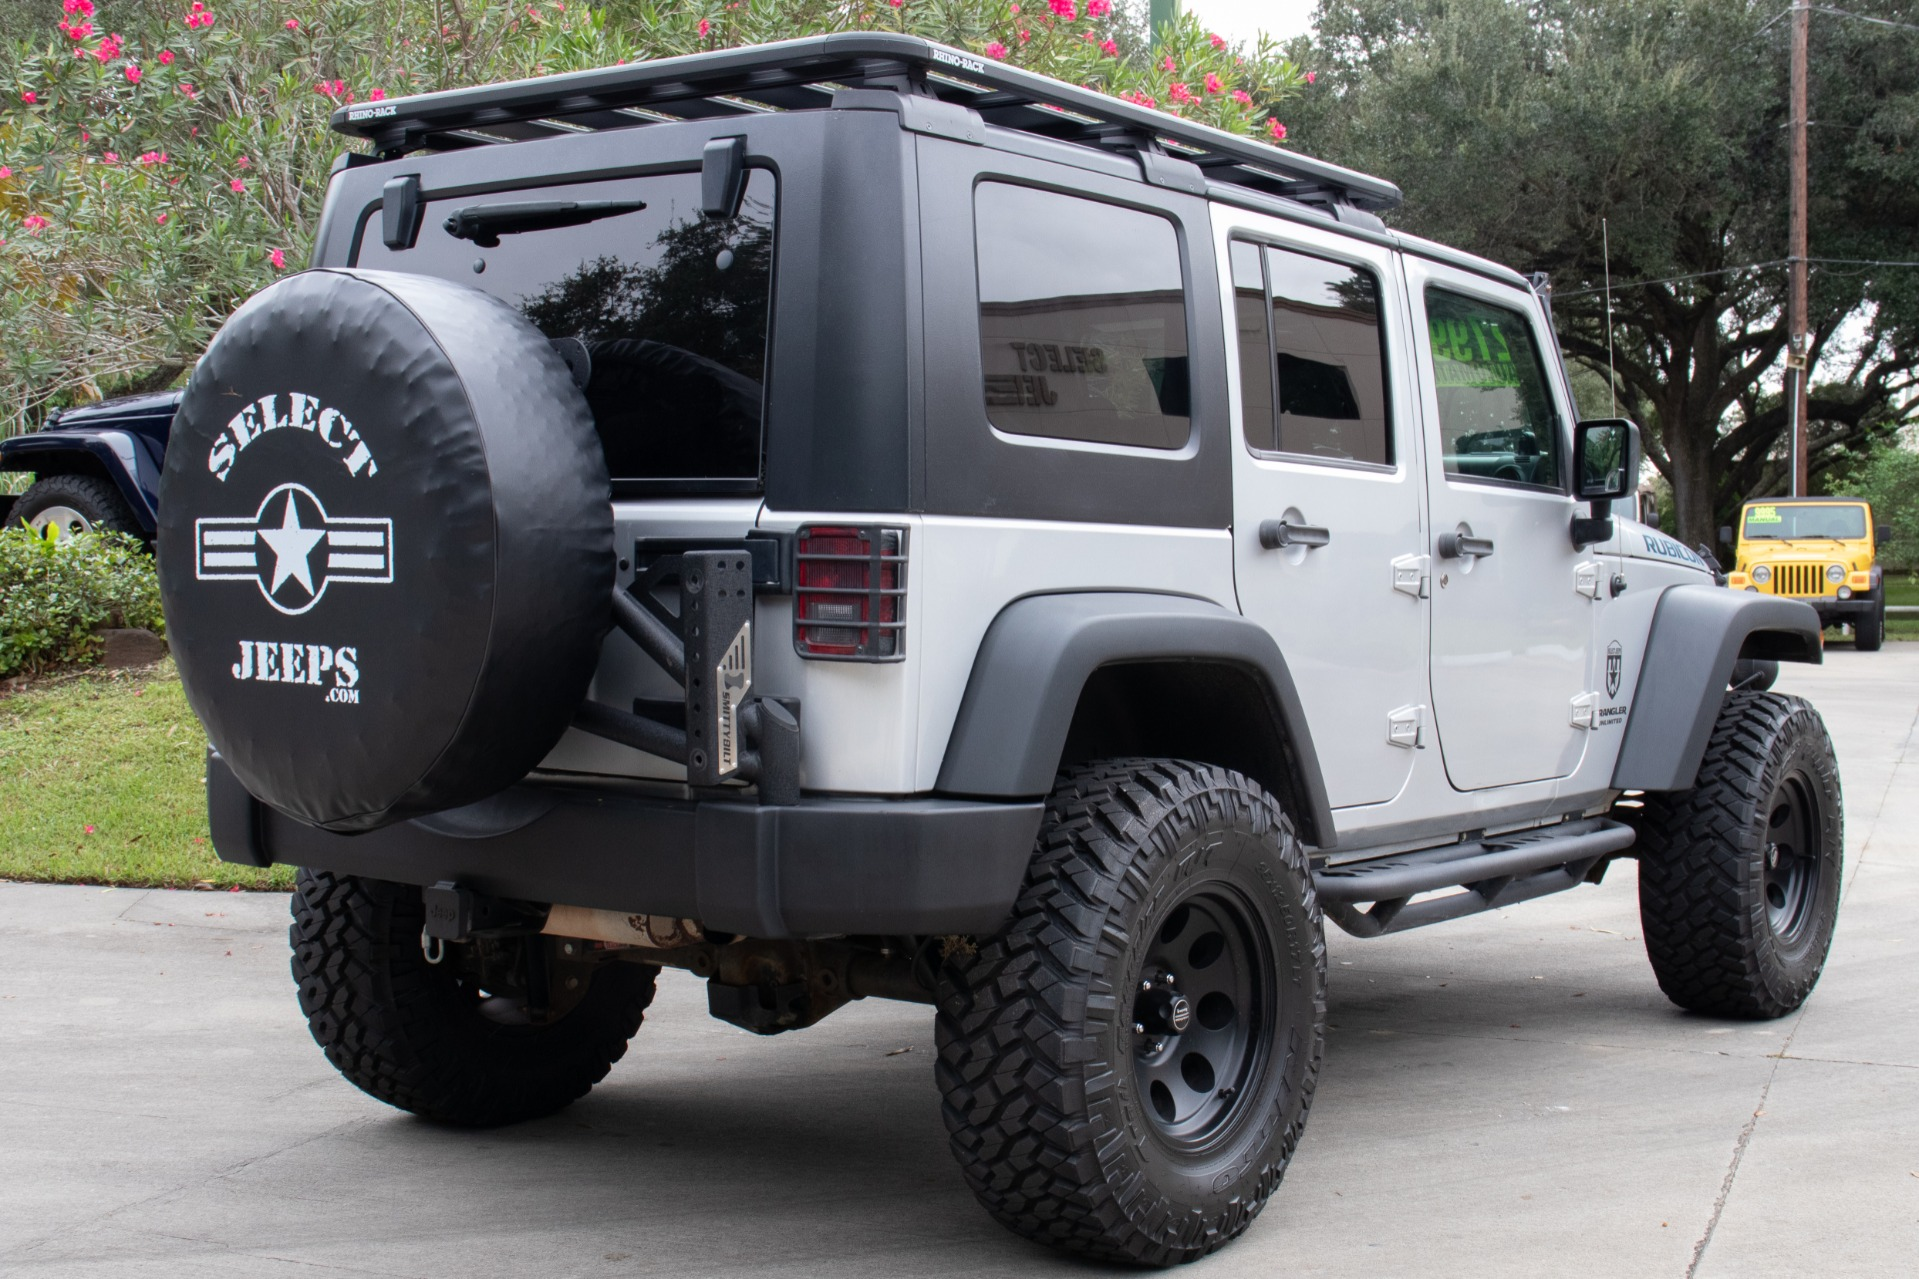 Used-2010-Jeep-Wrangler-Unlimited-Rubicon